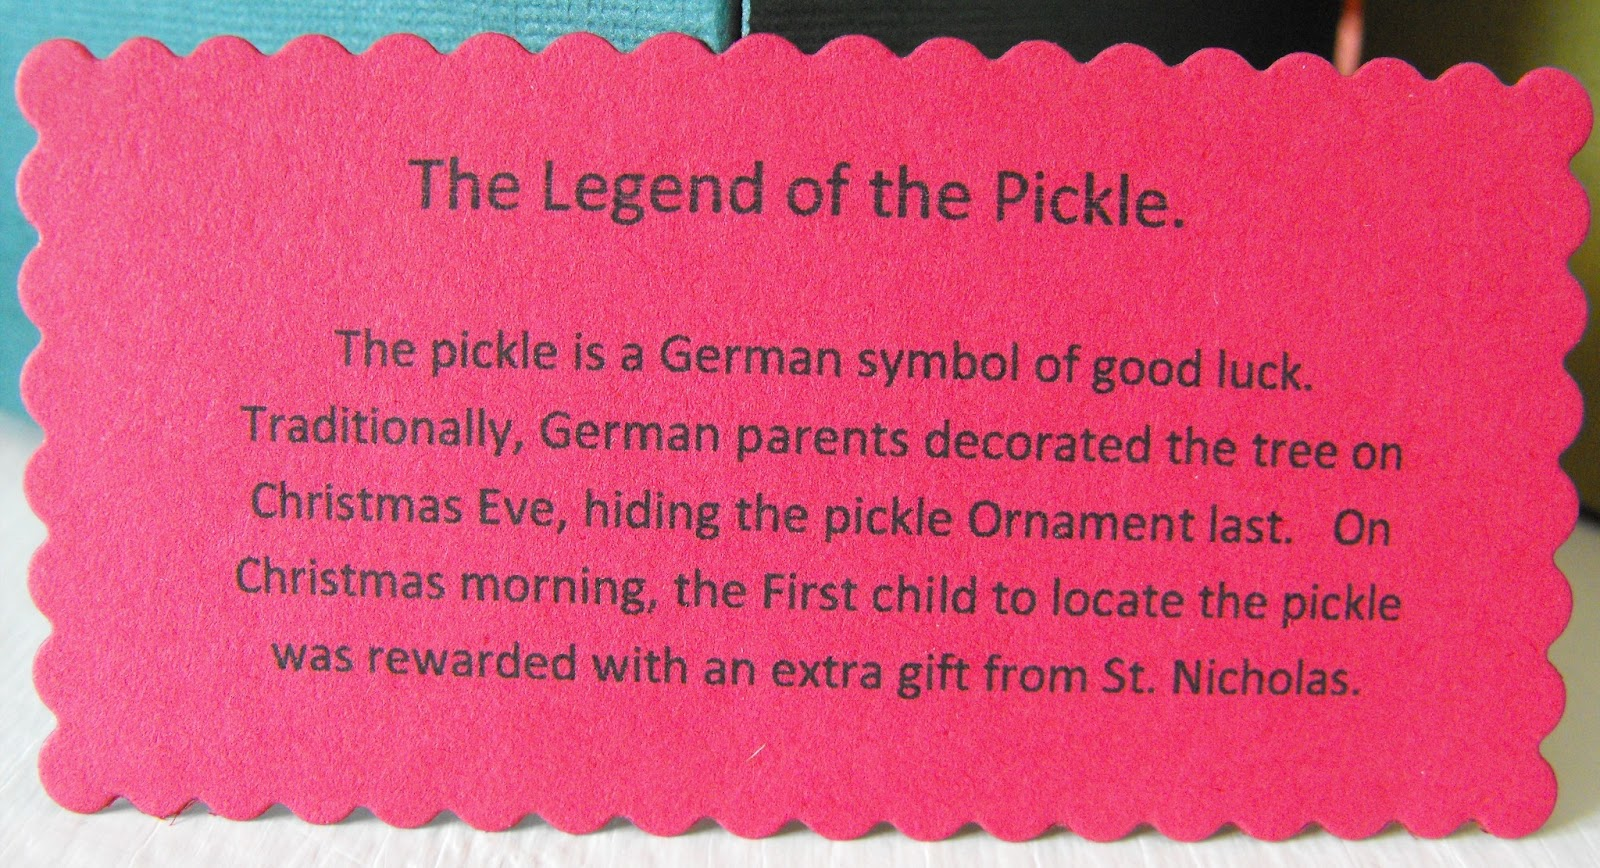 weve had this tradition in our family as long as i can remember this christmas was no exception with the first one to mentionoh - Christmas Pickle Story